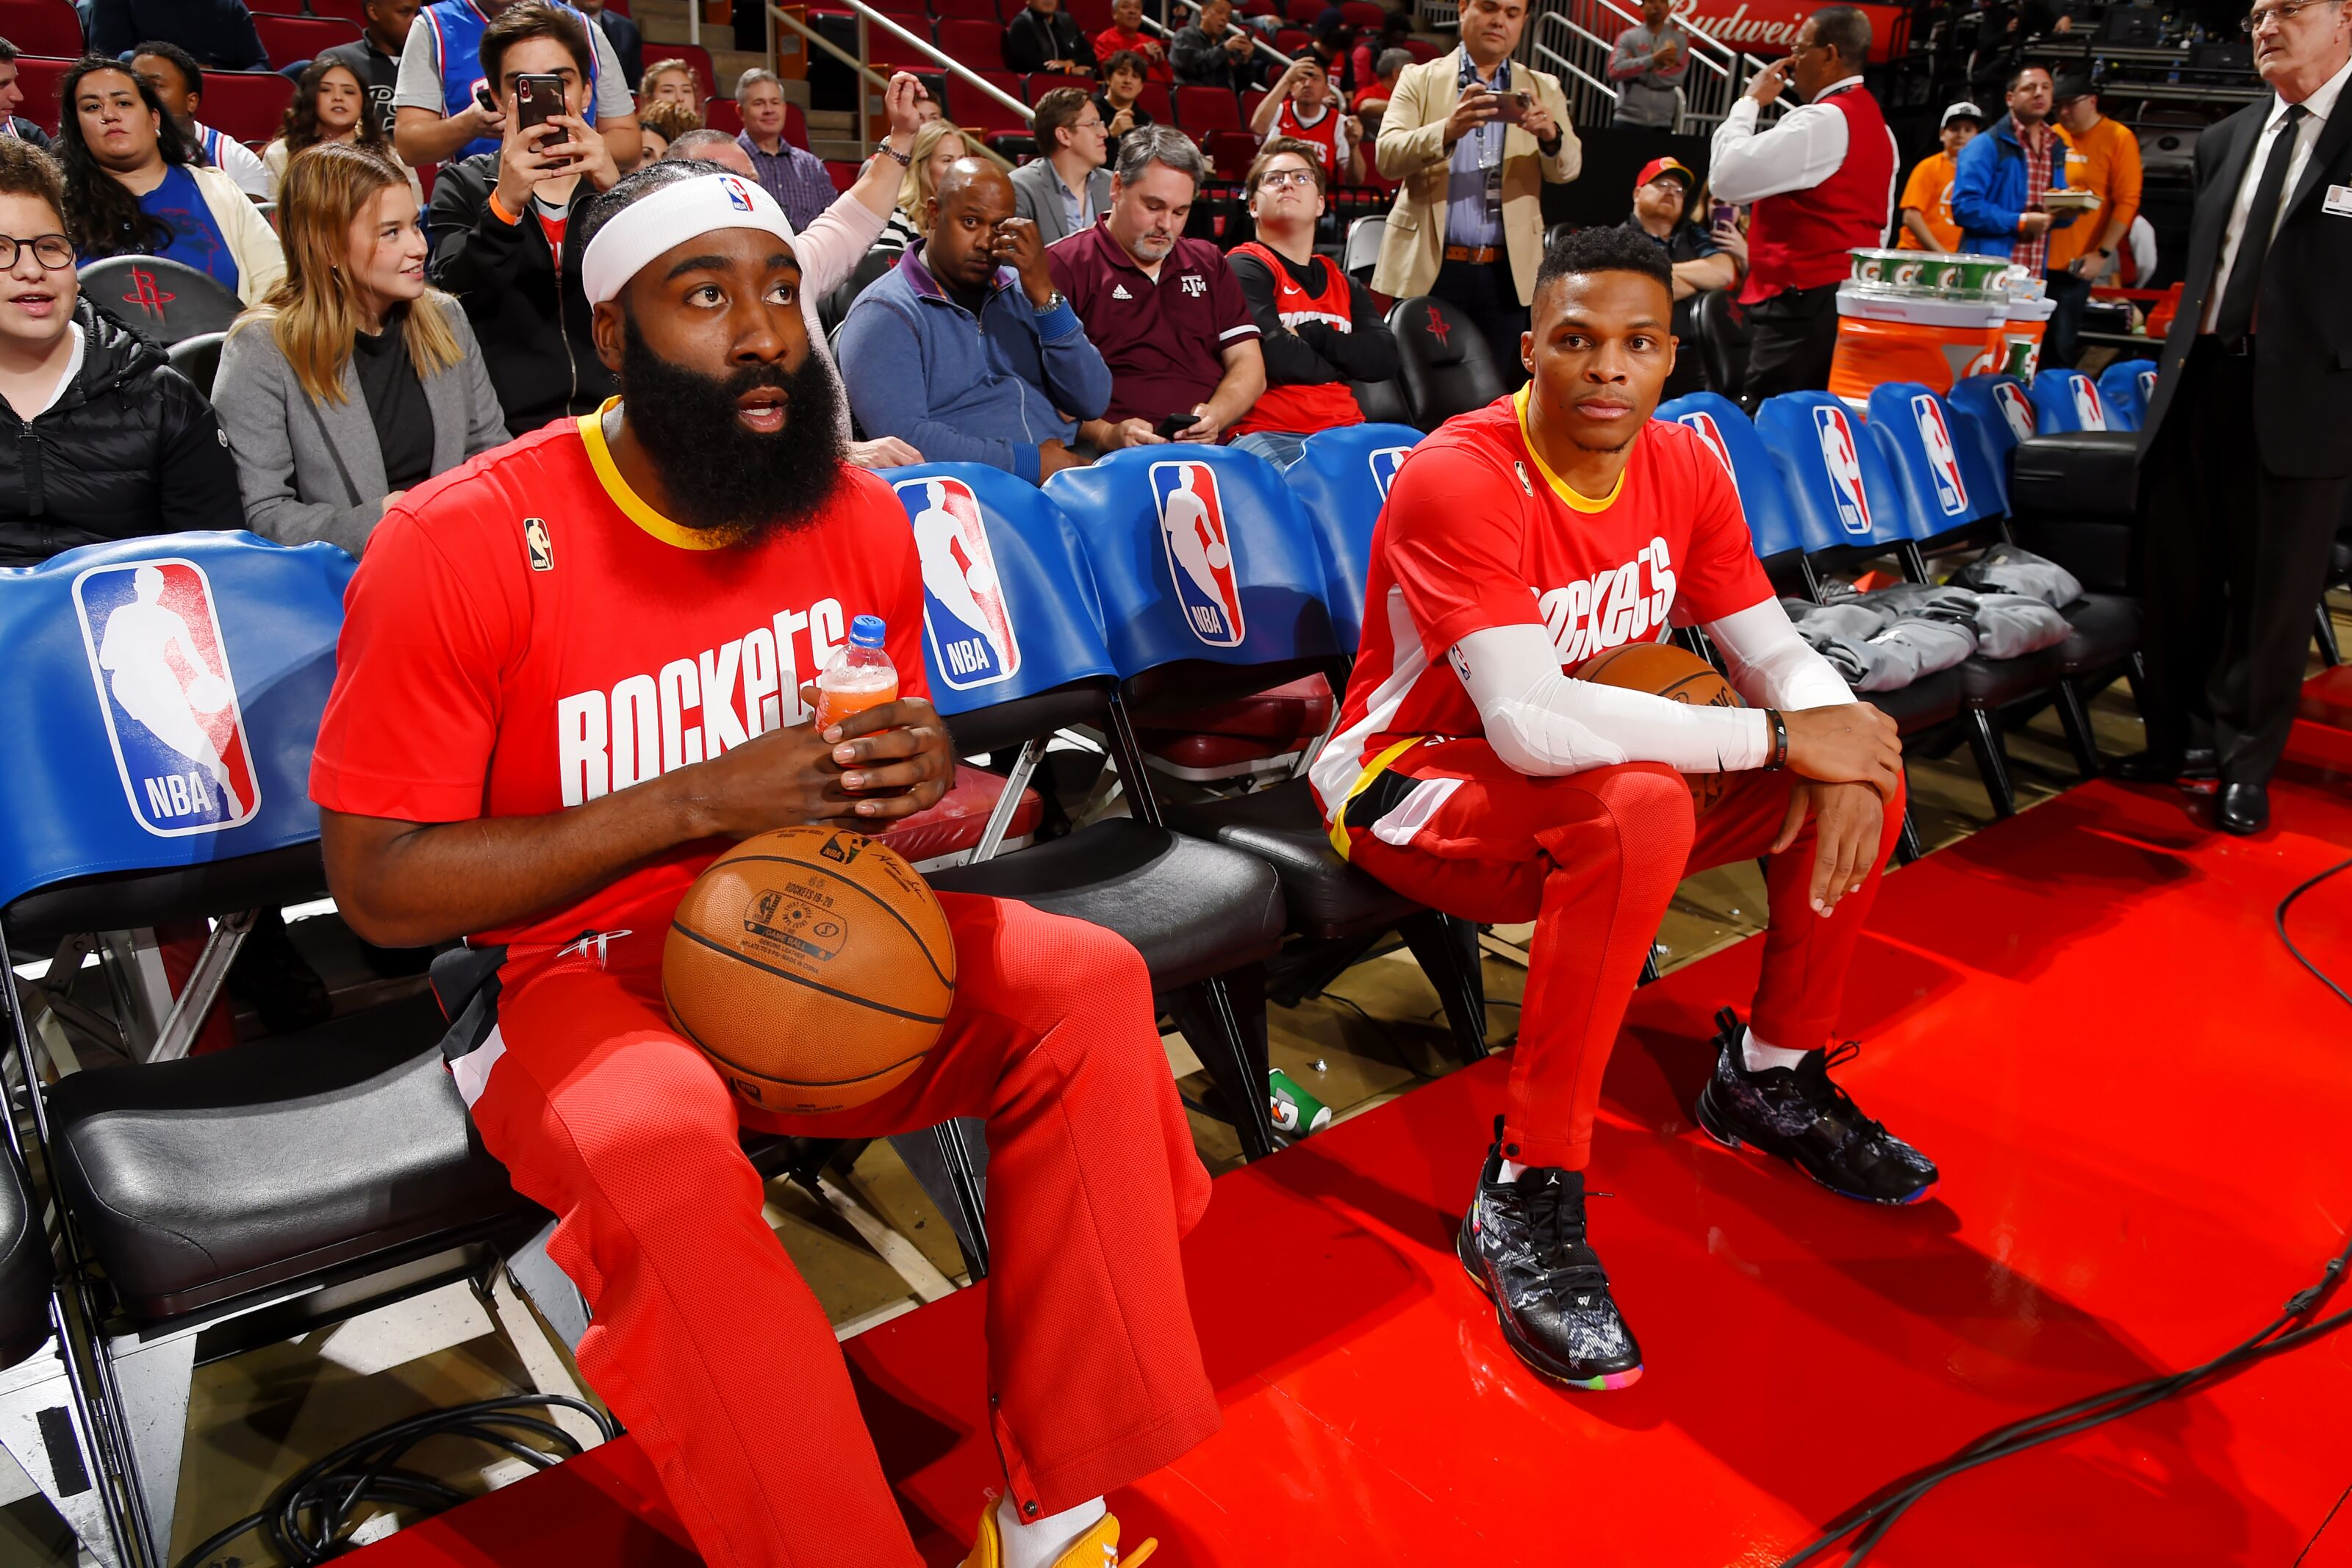 Houston Rockets: This team could have a new sheriff in town